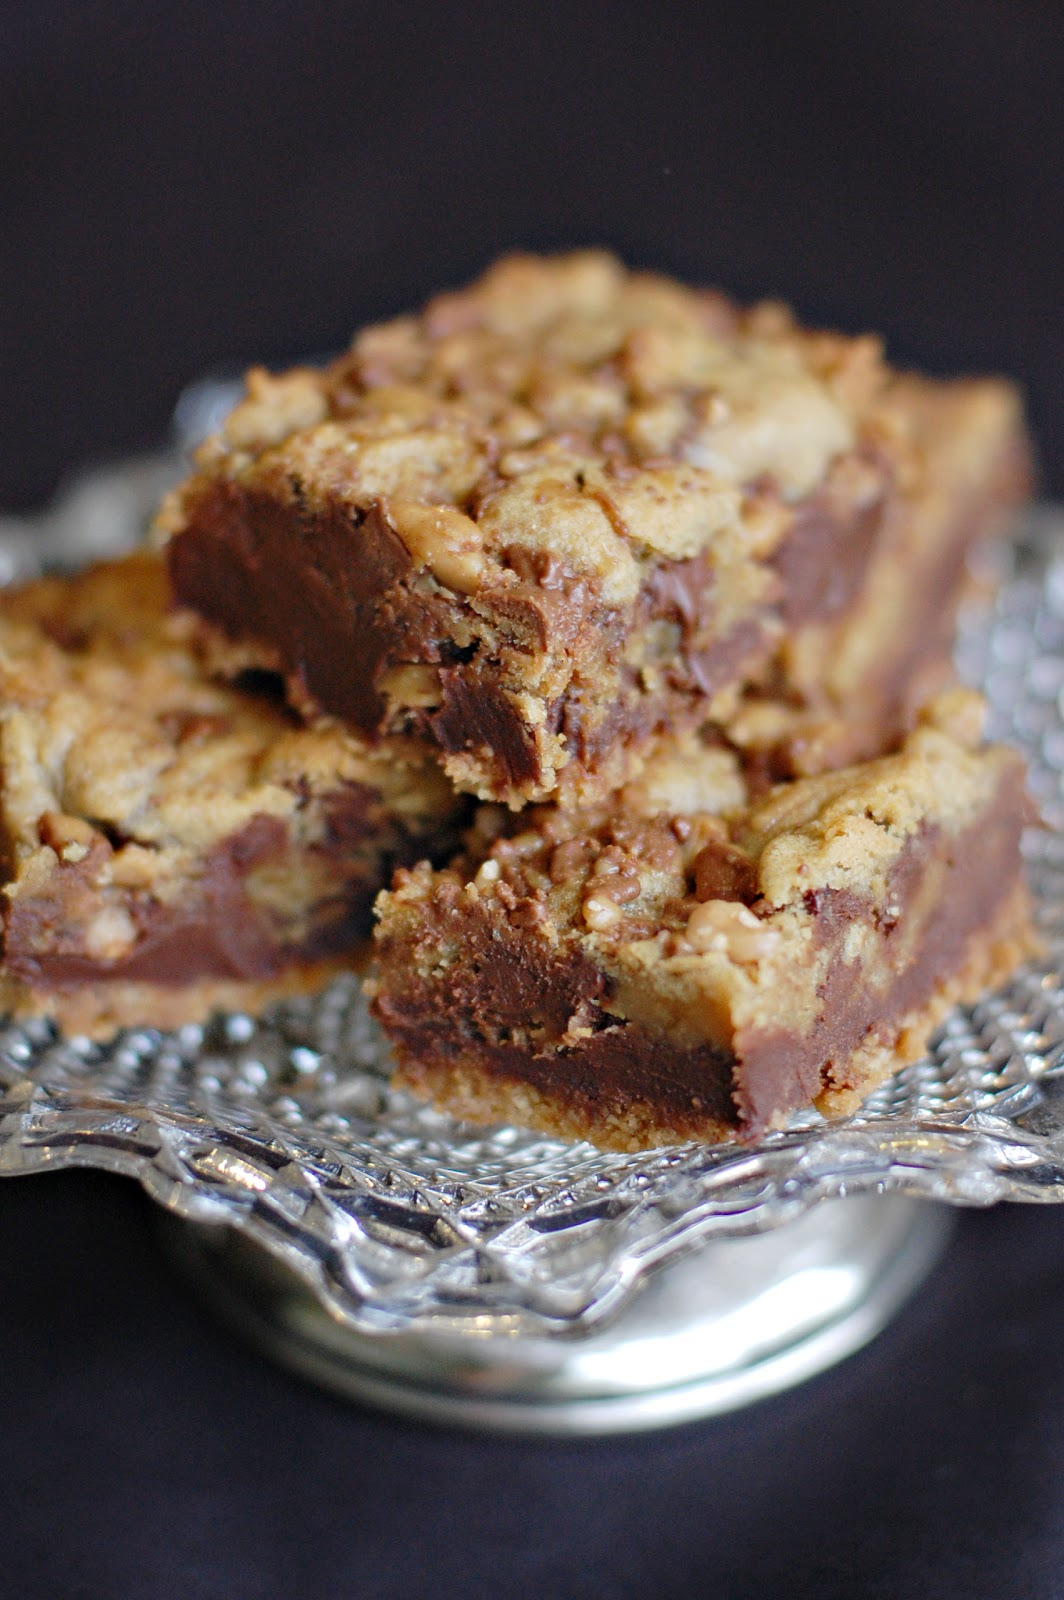 Barefoot and Baking: Fudgy Chocolate Chip-Toffee Bars